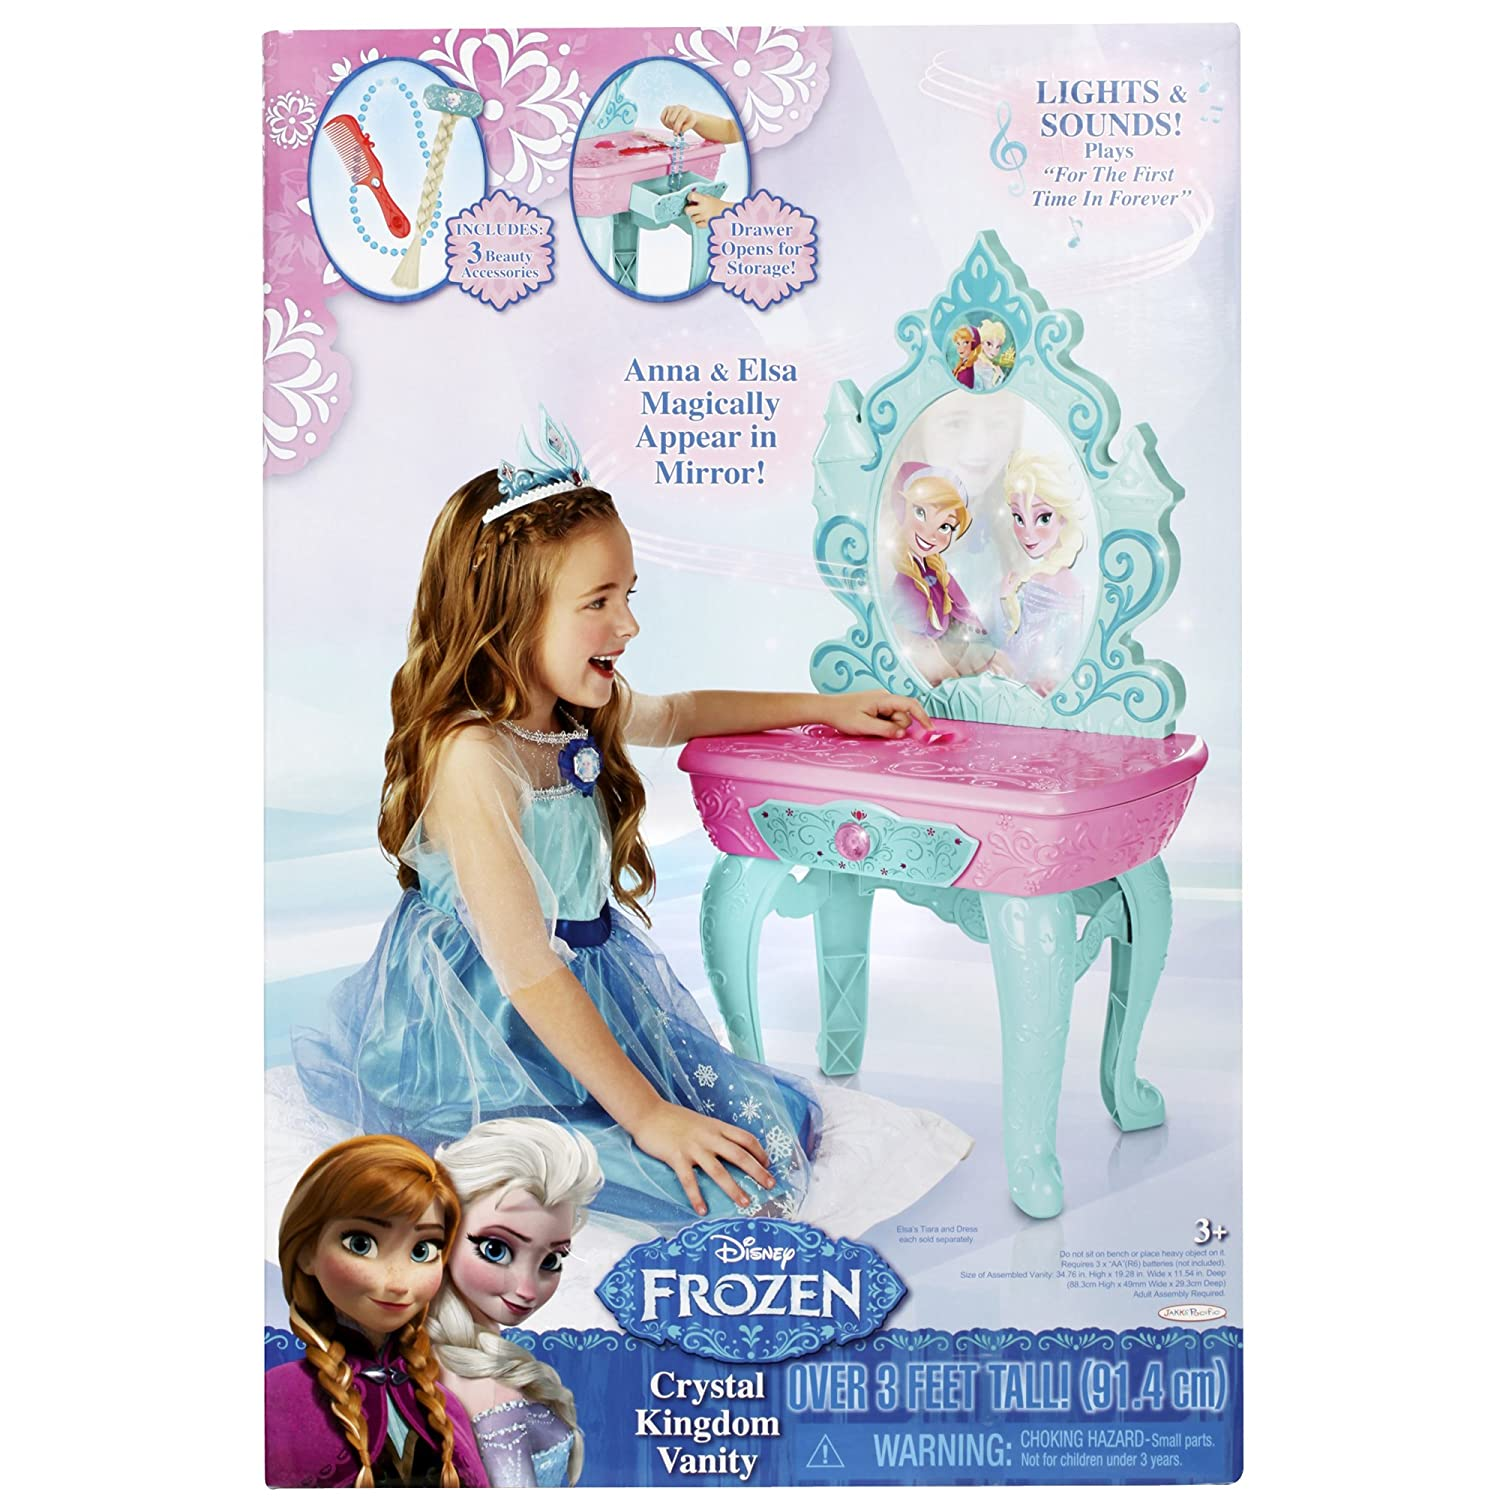 sc 1 st  Amazon.com & Amazon.com: Frozen Disney Crystal Kingdom Vanity: Toys u0026 Games